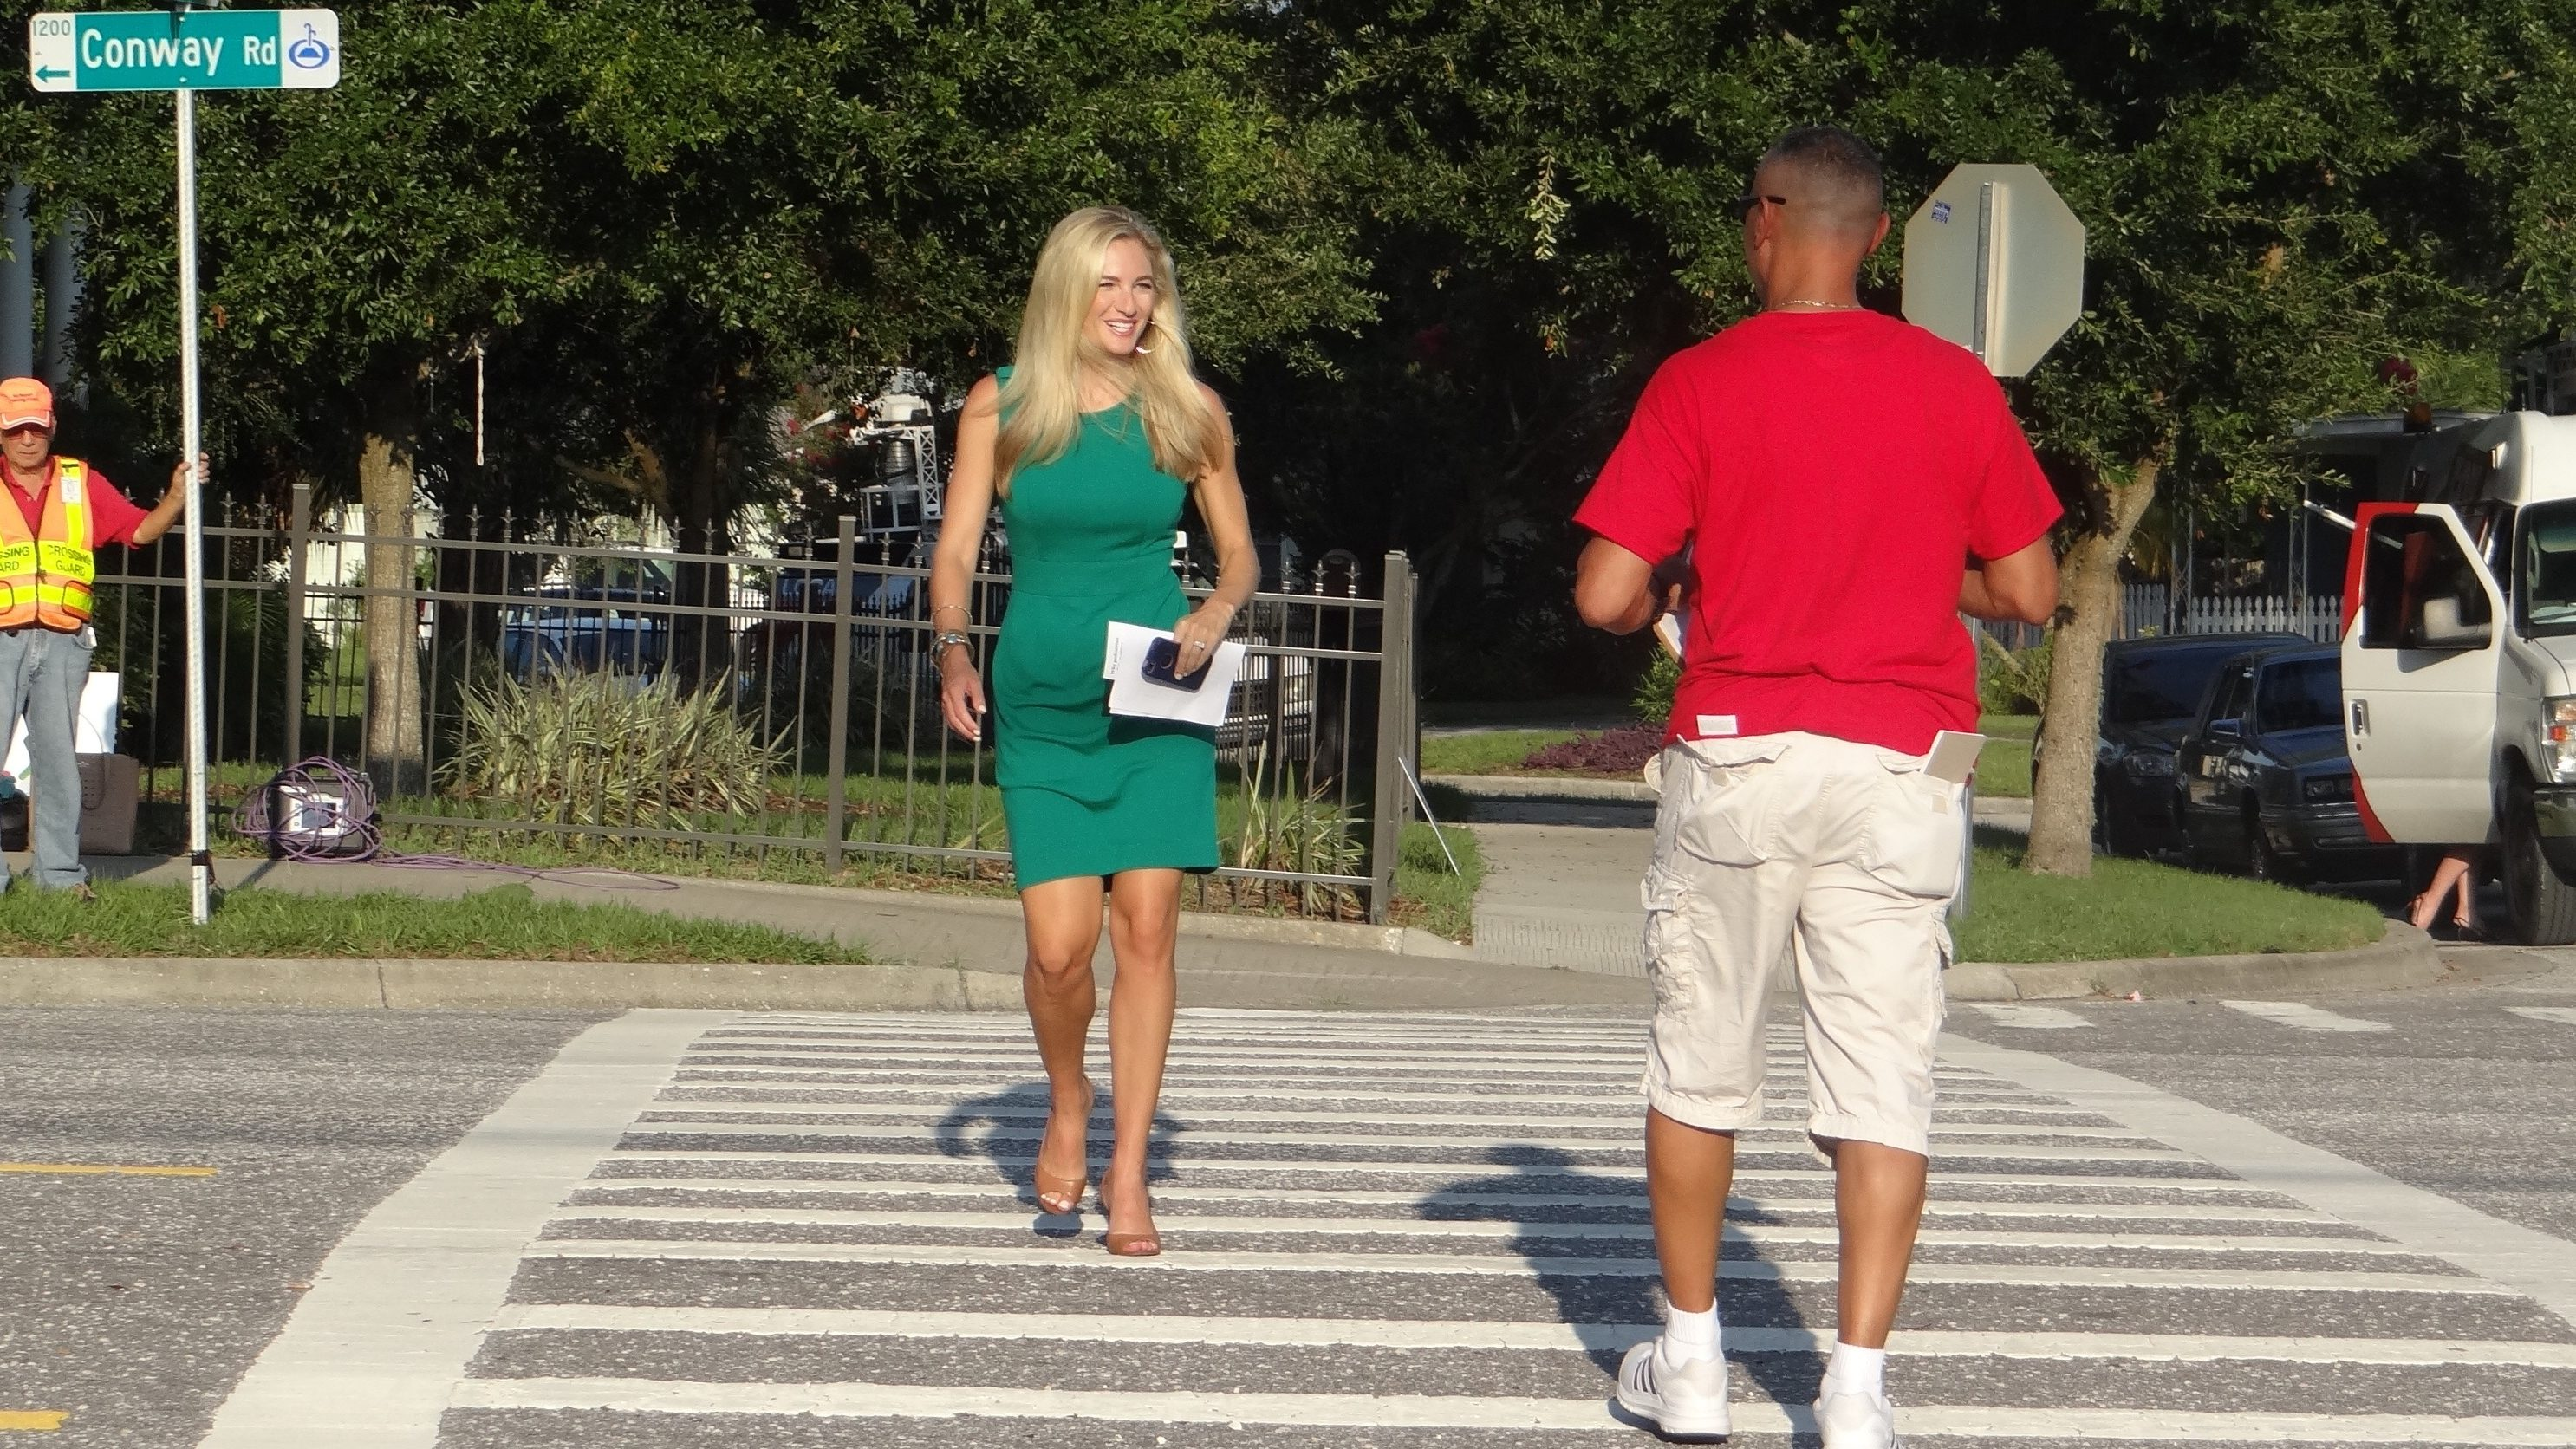 Pedestrians Vs People Walking – There's A Difference